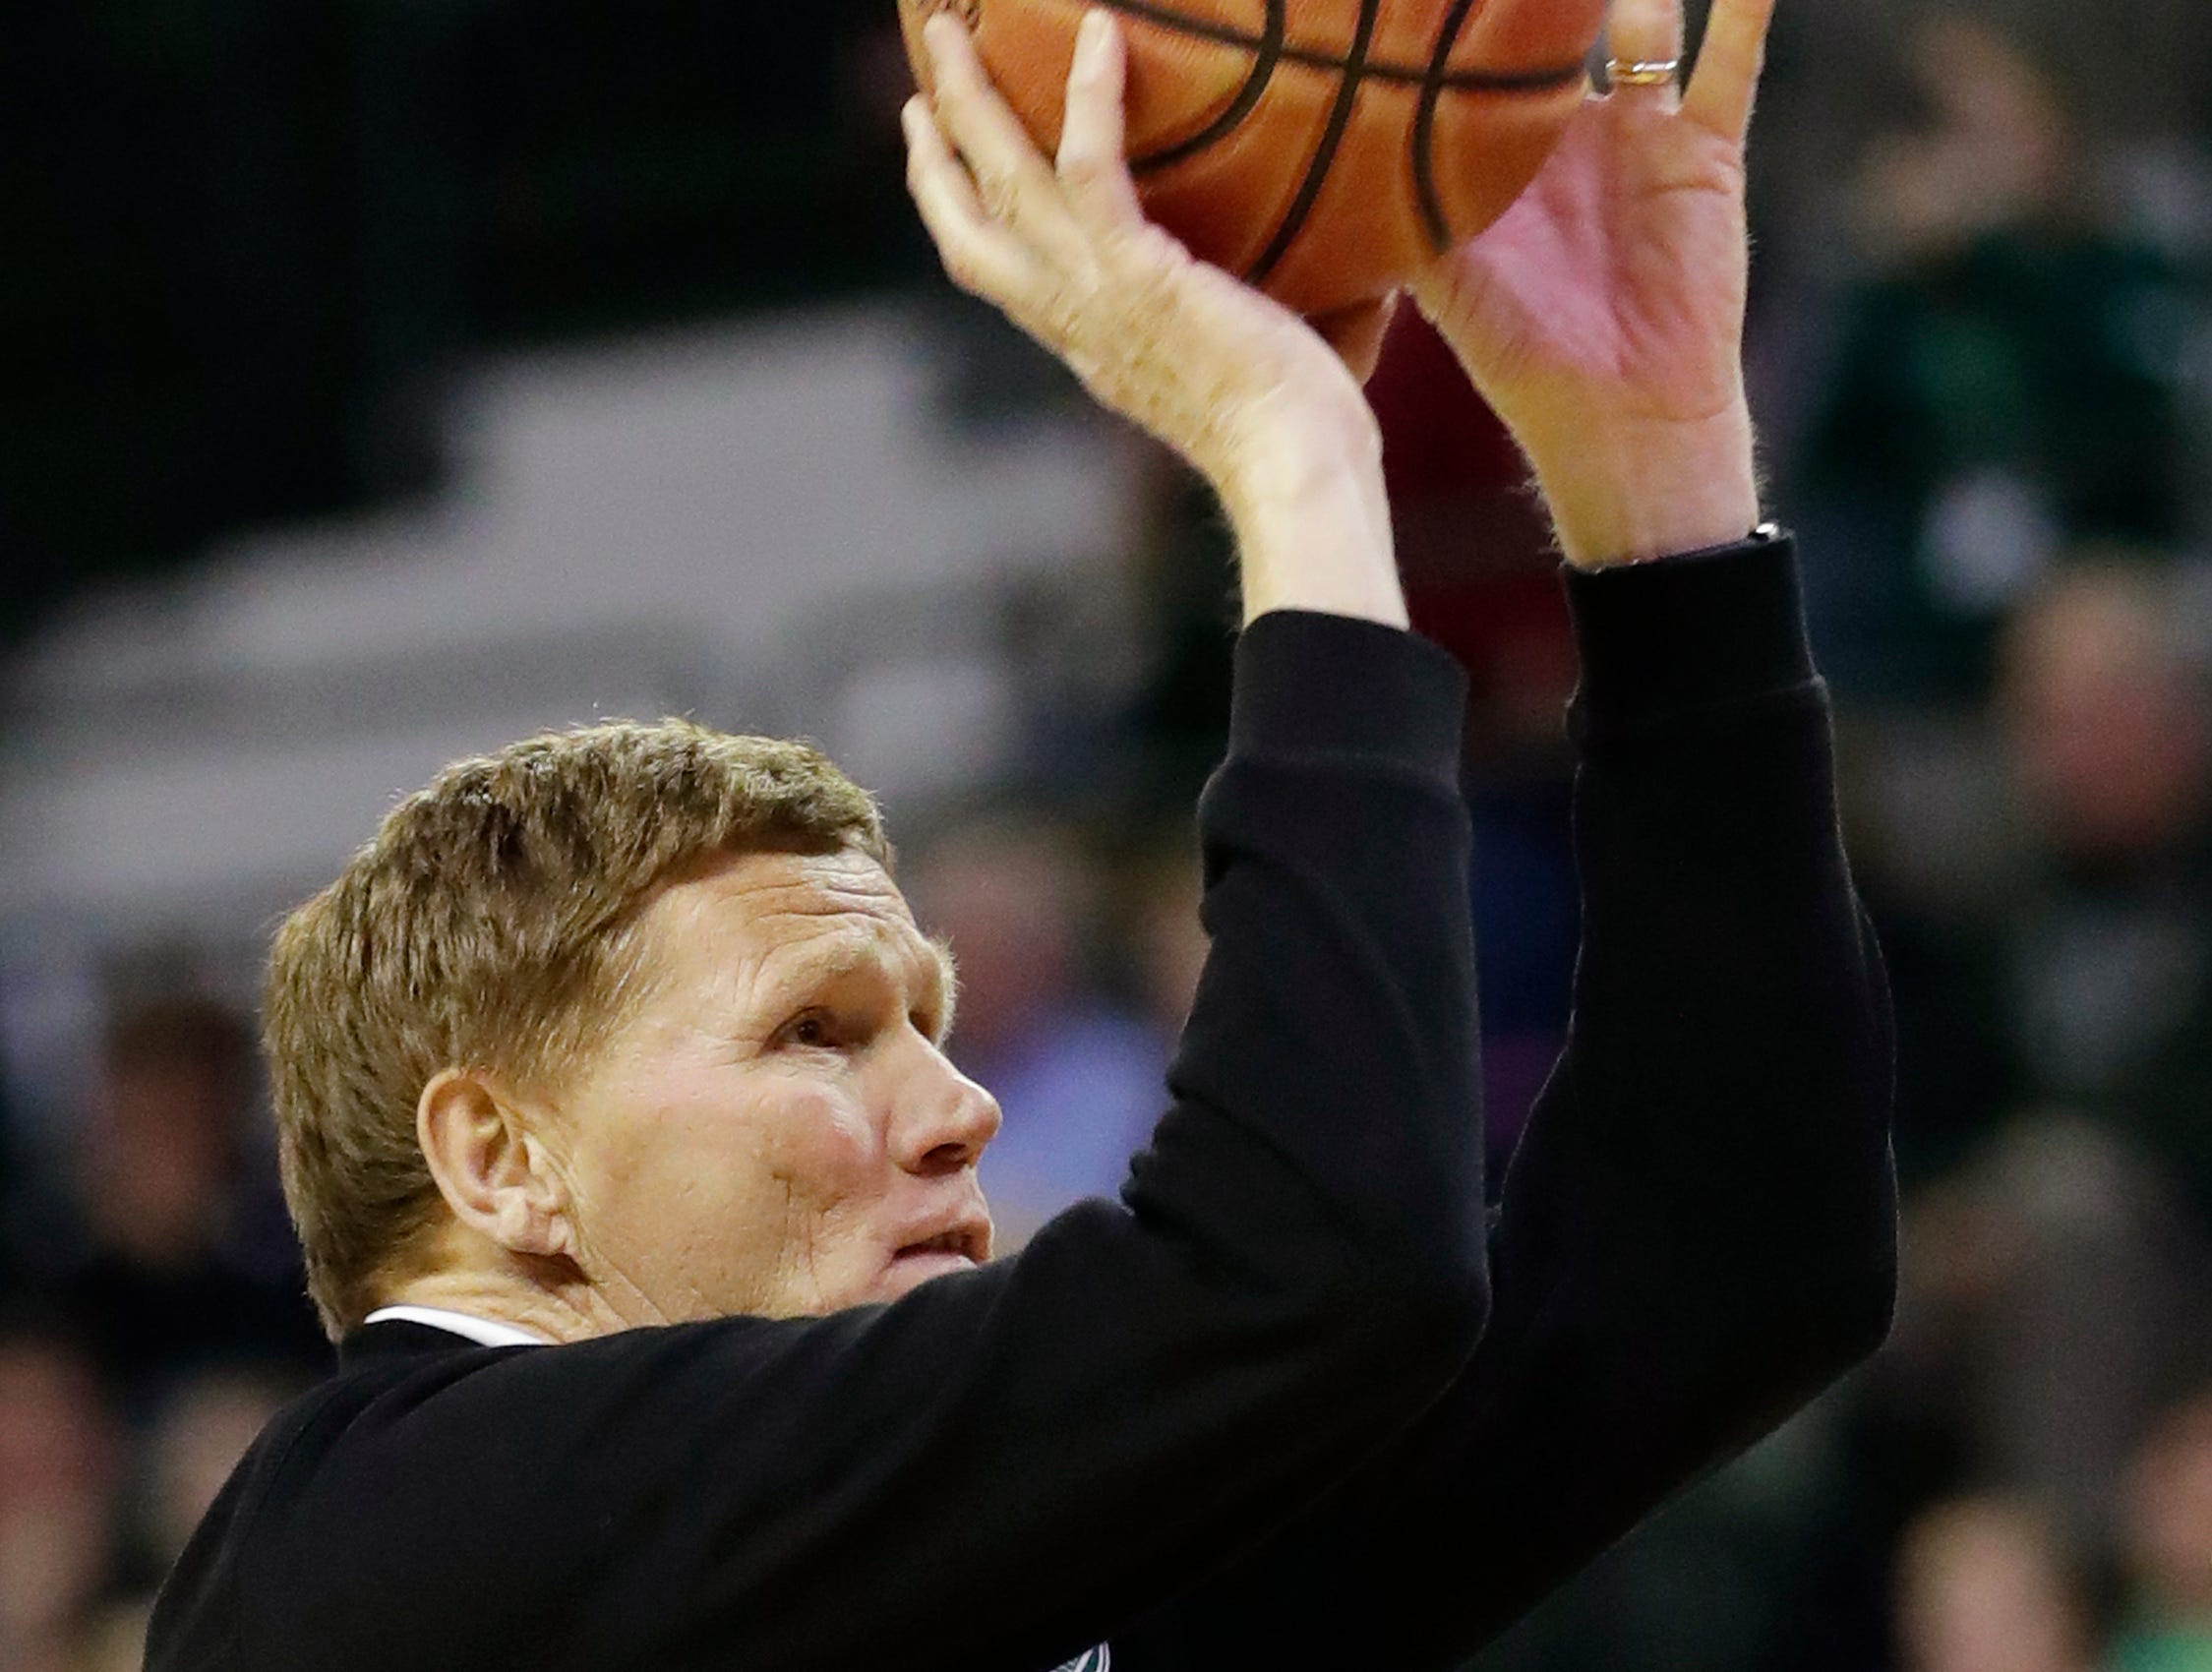 Green Bay Packers CEO Mark Murphy shoots free throws at a women's NCAA basketball game at the Kress Center on Tuesday, November 6, 2018 in Green Bay, Wis.